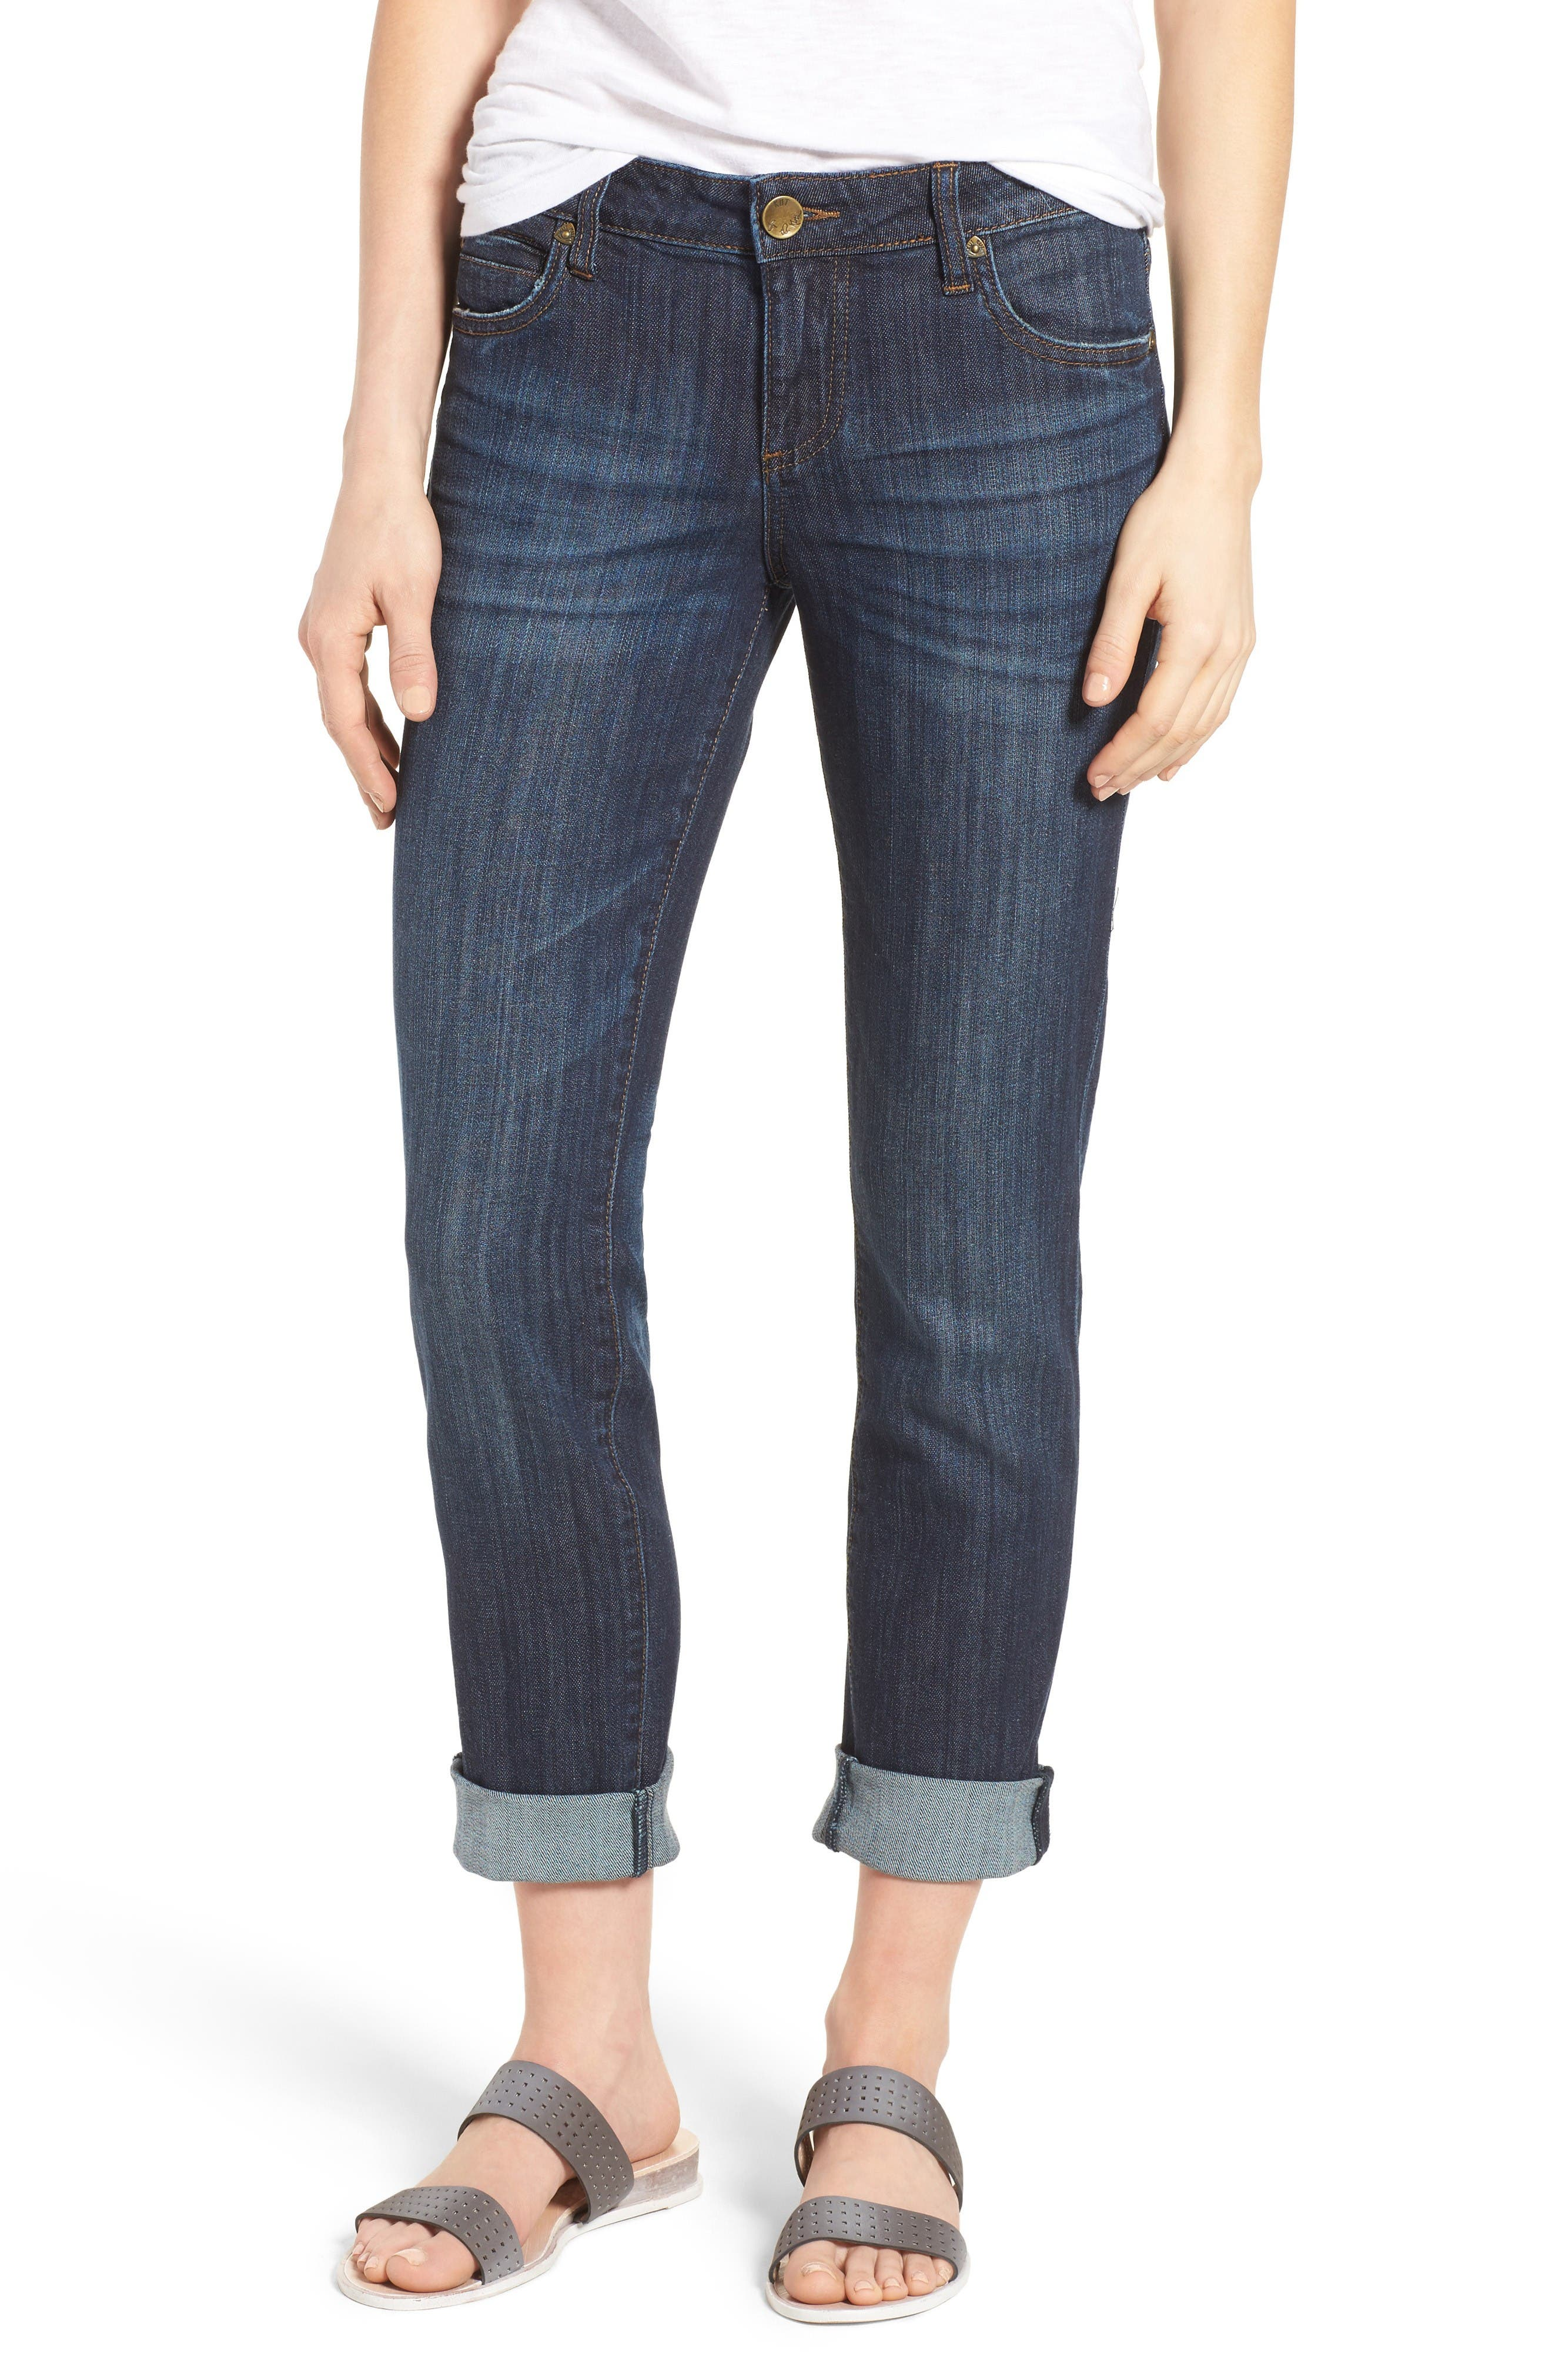 Main Image - KUT from the Kloth Catherine Boyfriend Jeans (Enticement) (Regular & Petite)